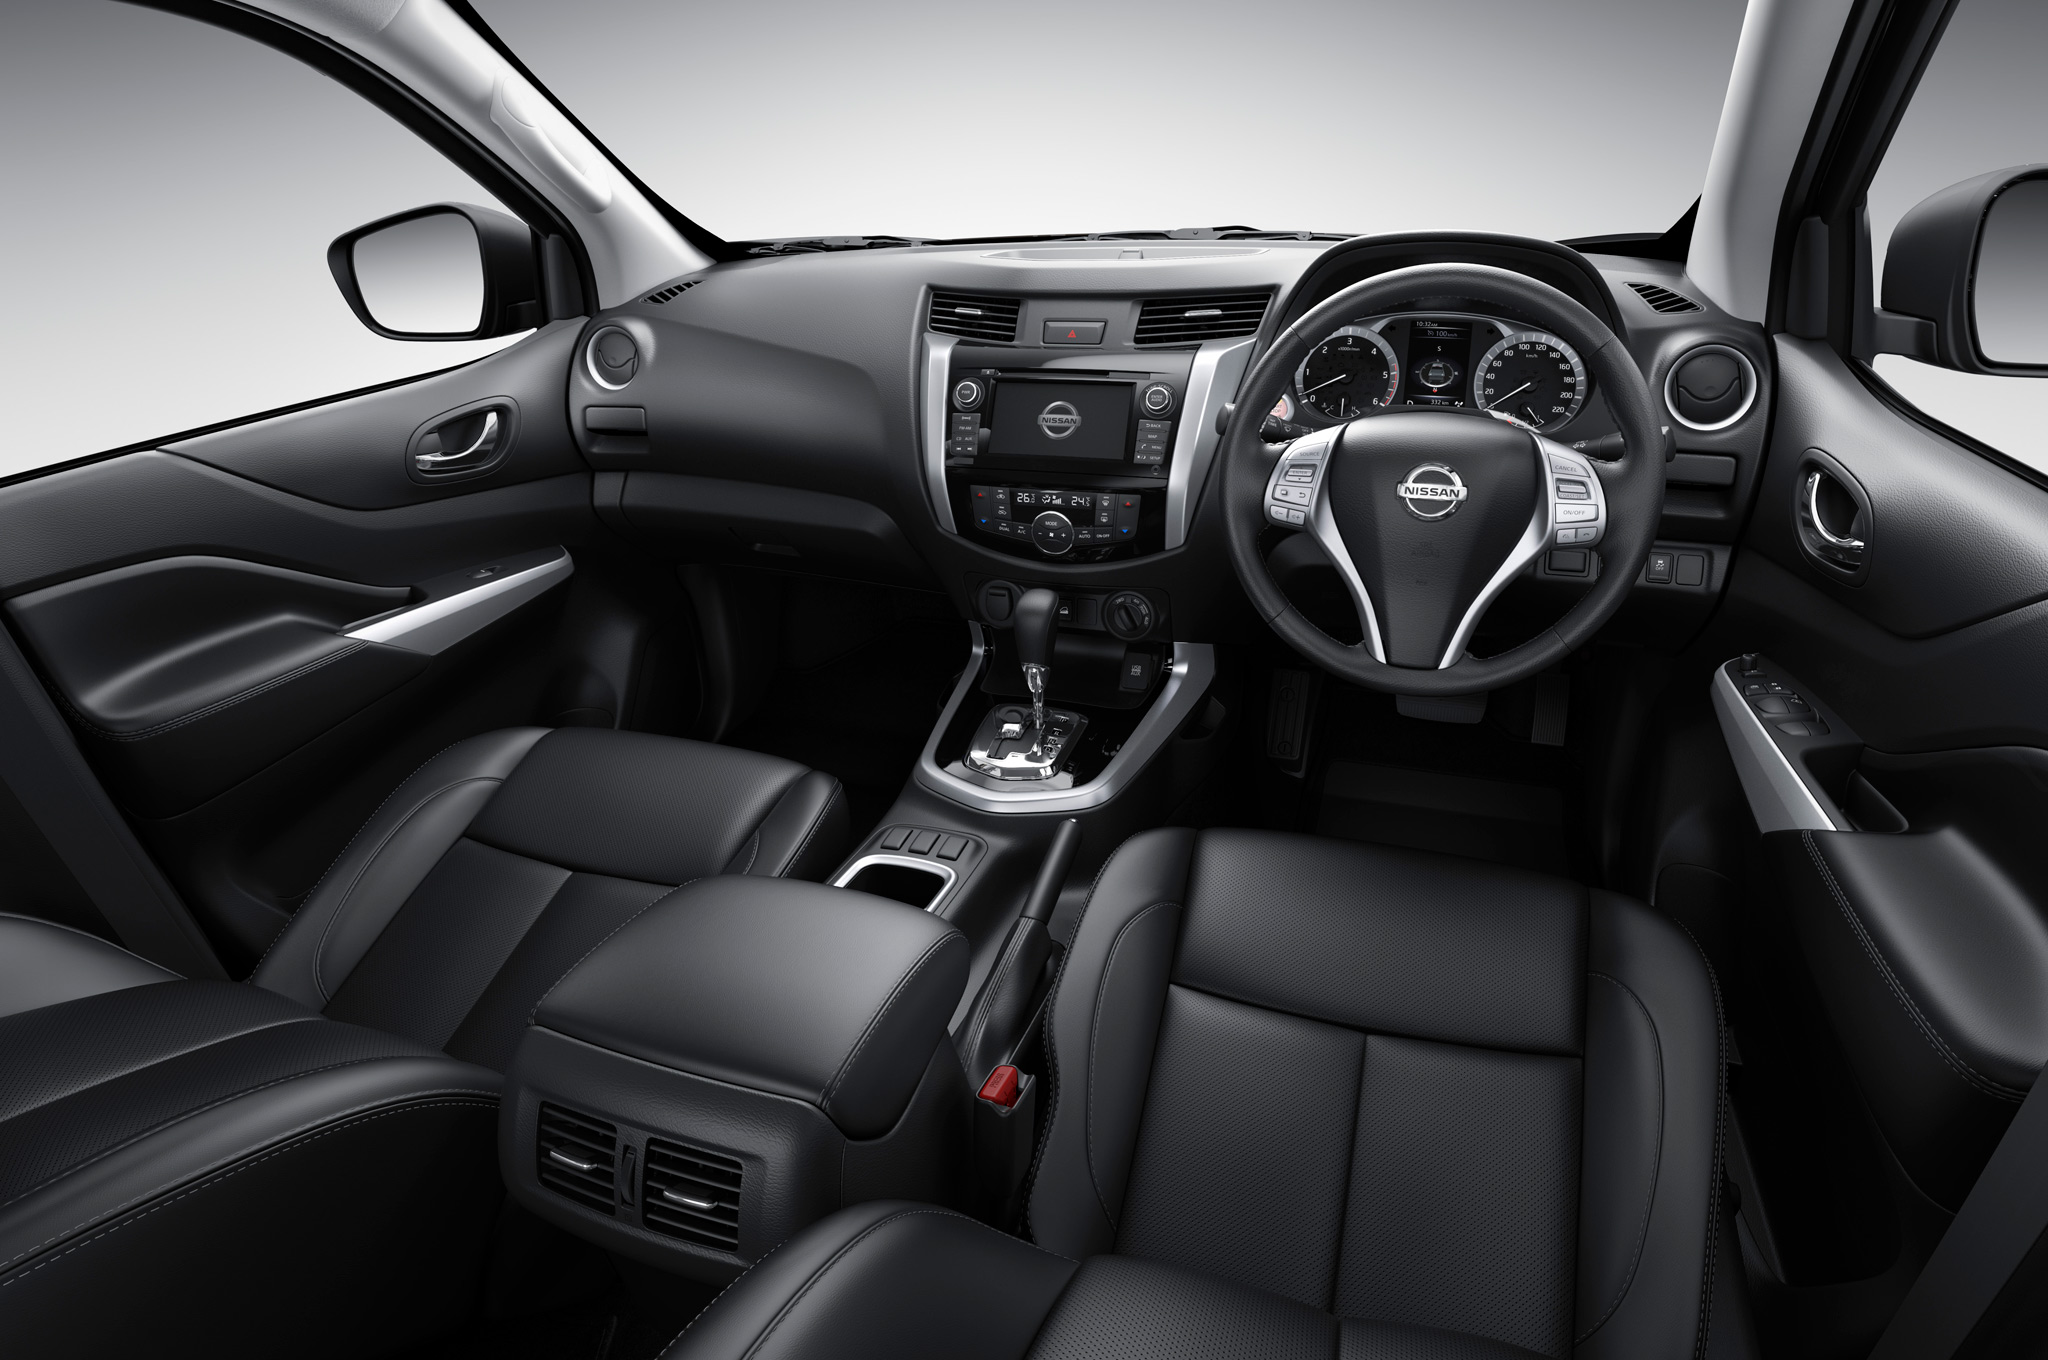 Nissan-NP300-Navara-12th-gen-interior-dark